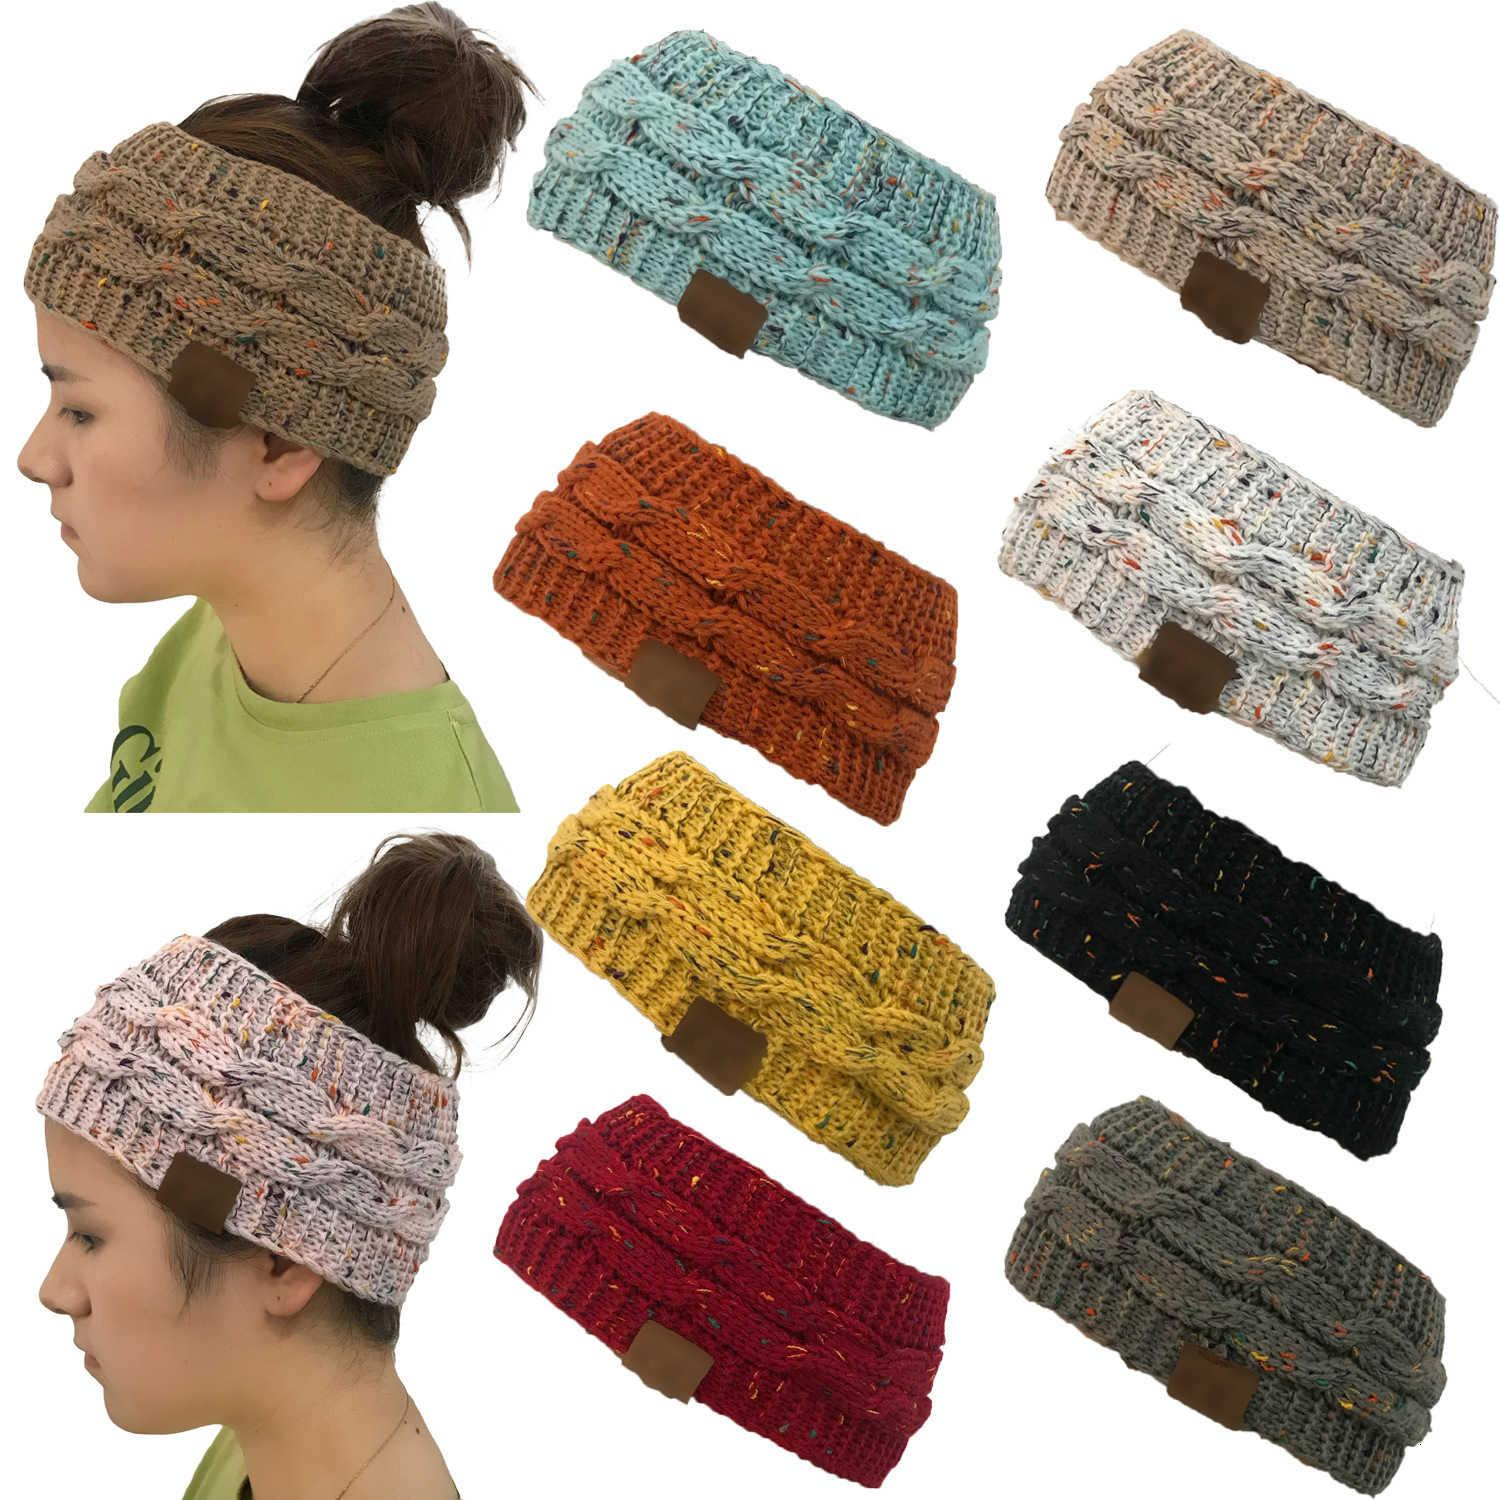 Colorful Knitted Ponytail Hats Hairband Crochet Twist Headband Winter Ear Warmer Elastic Band Wide Hair Accessories Party Favor RRA3732